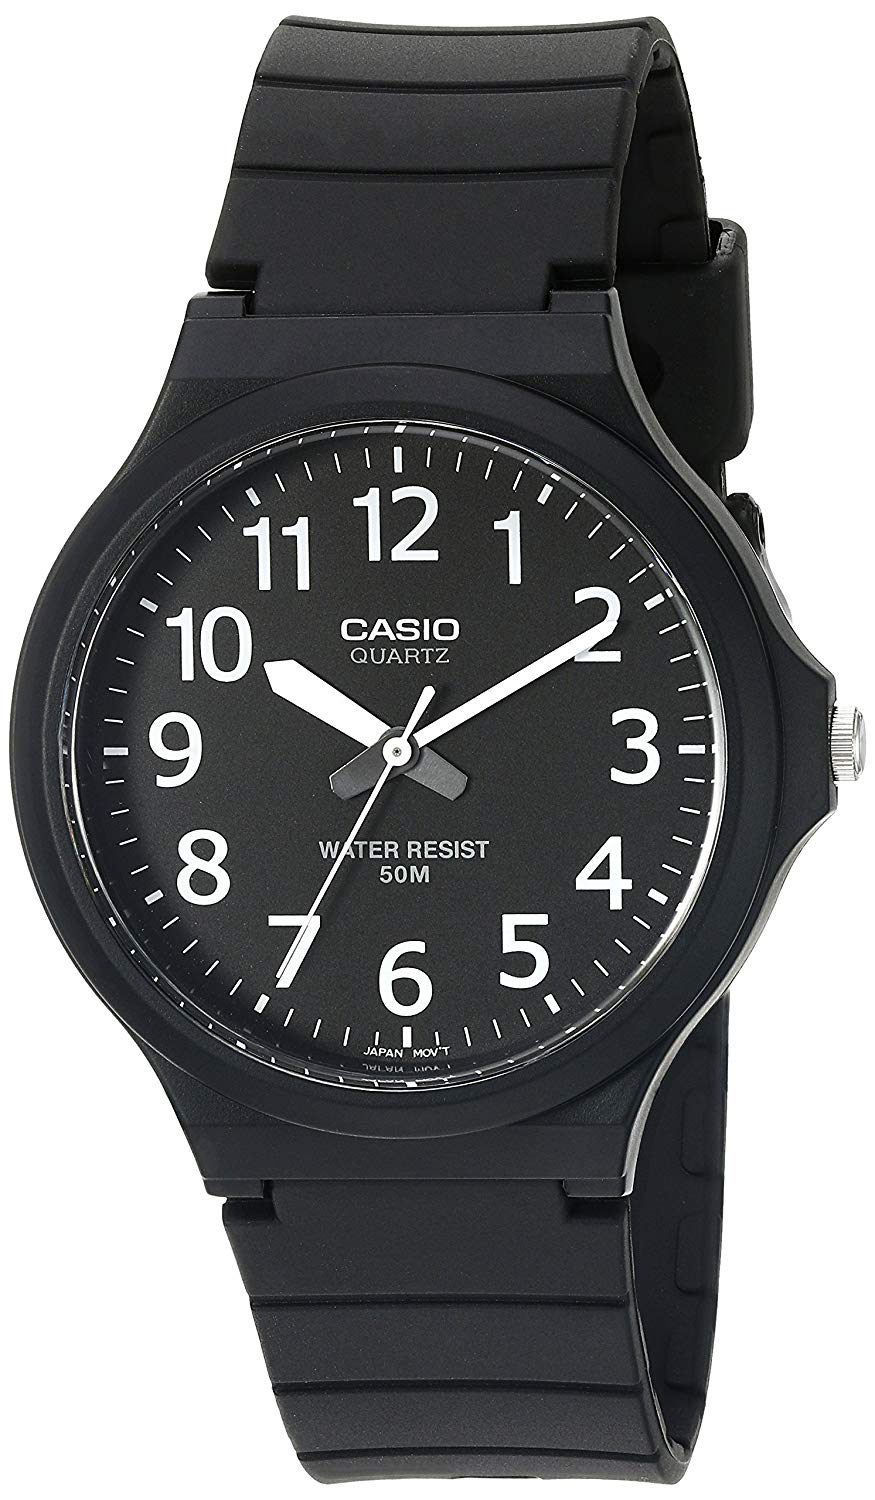 Casio Men's Classic Quartz Watch with Resin Strap, Black, 20.15 (Model: MW240-1BV)